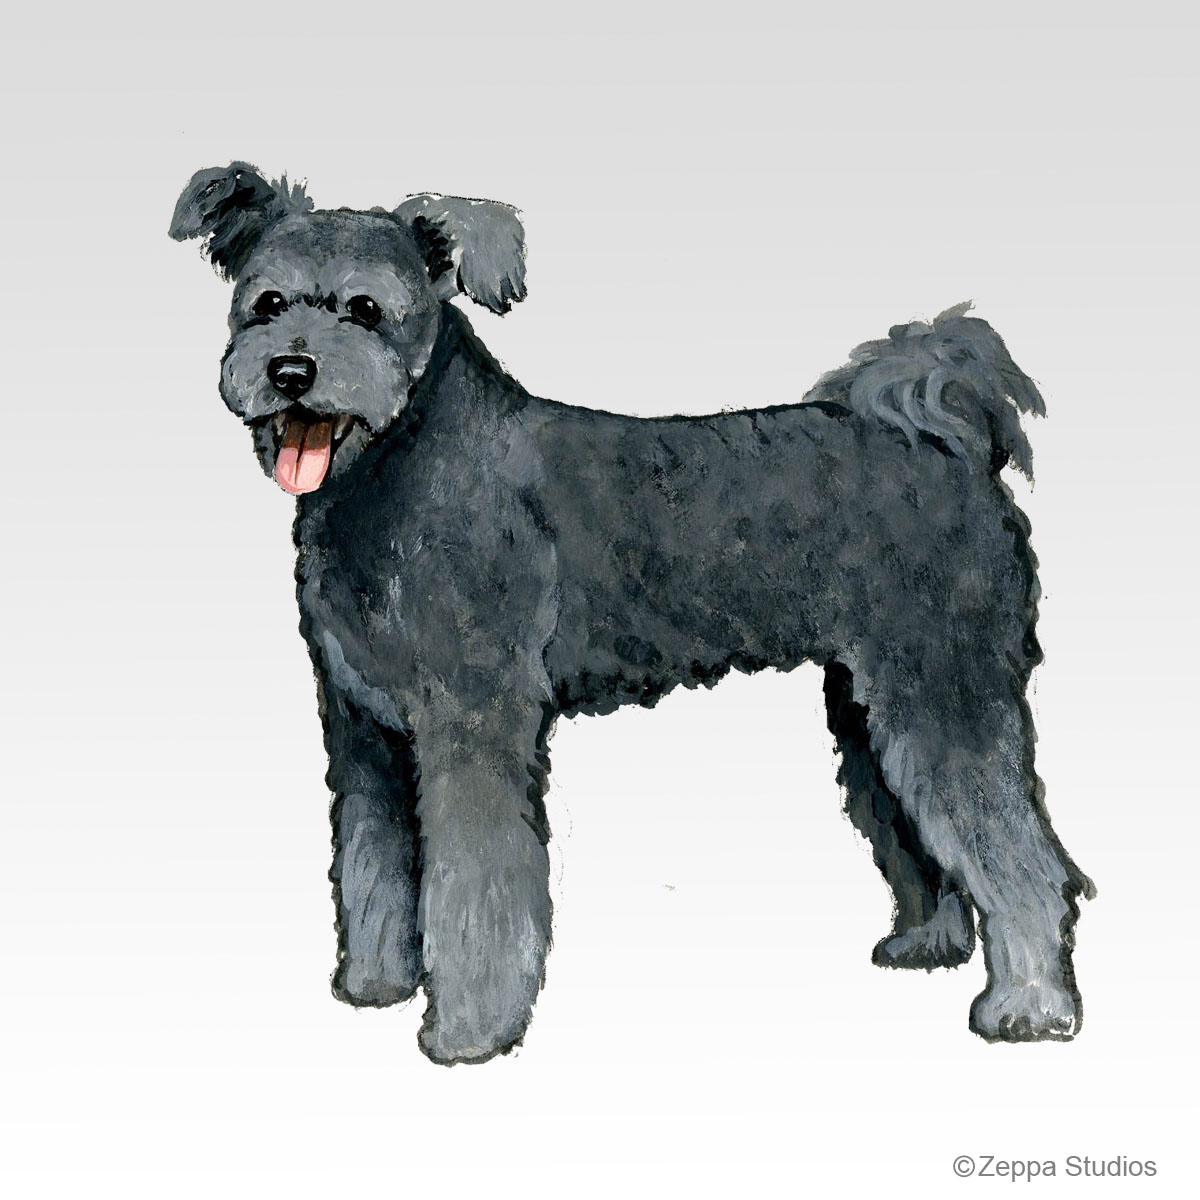 Pumi, new Fur Children breed design from Zeppa Studios